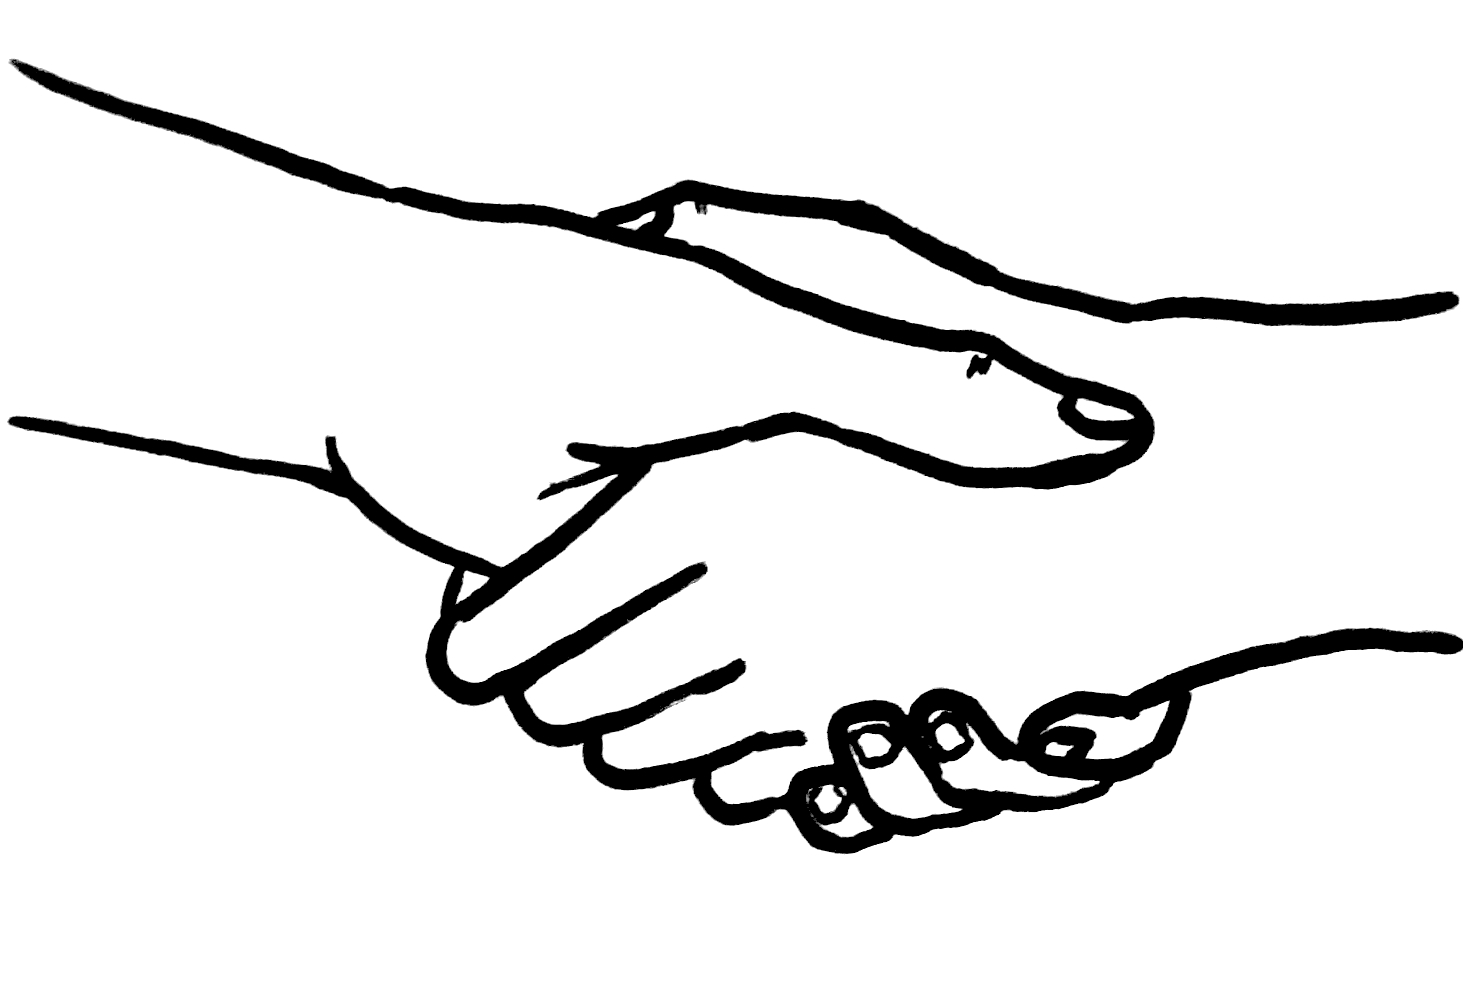 """Handshake"" by Aidan Jones Creative Commons 2.0 https://flic.kr/p/6rUPaH"